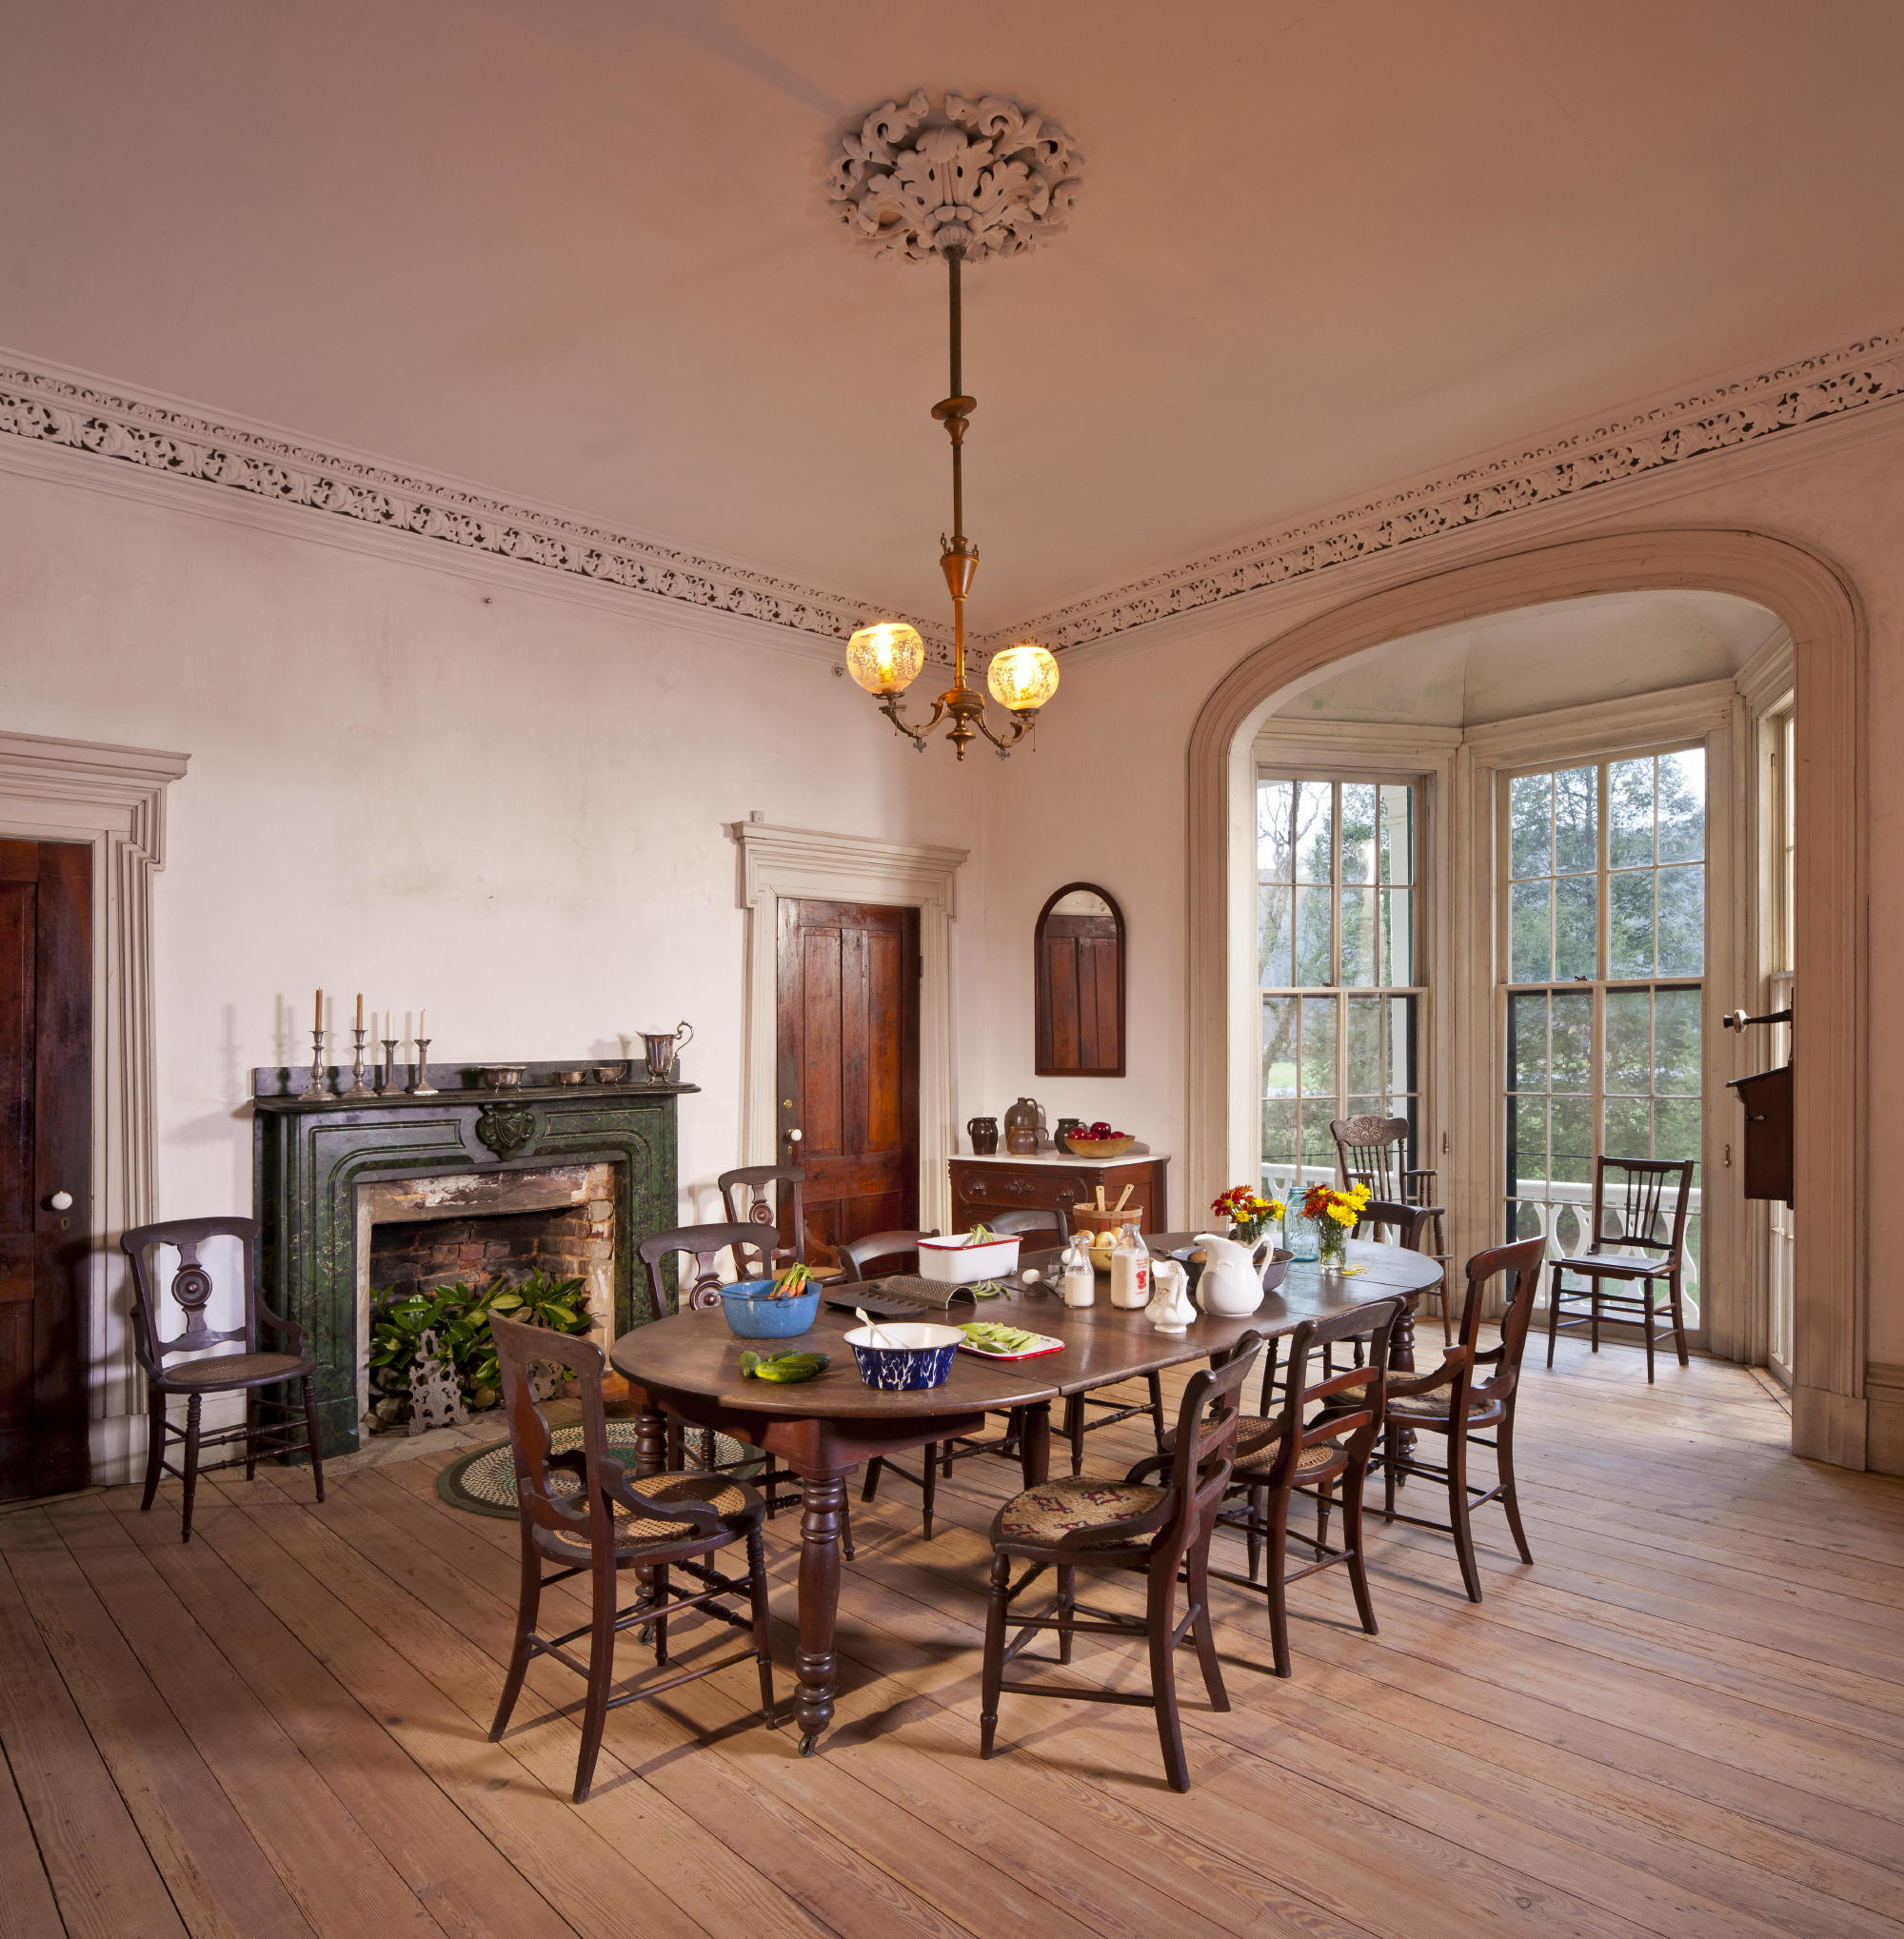 The farmhouse dining room at Hardman Farm. Photo: c Jonathan Hillyer / Atlanta